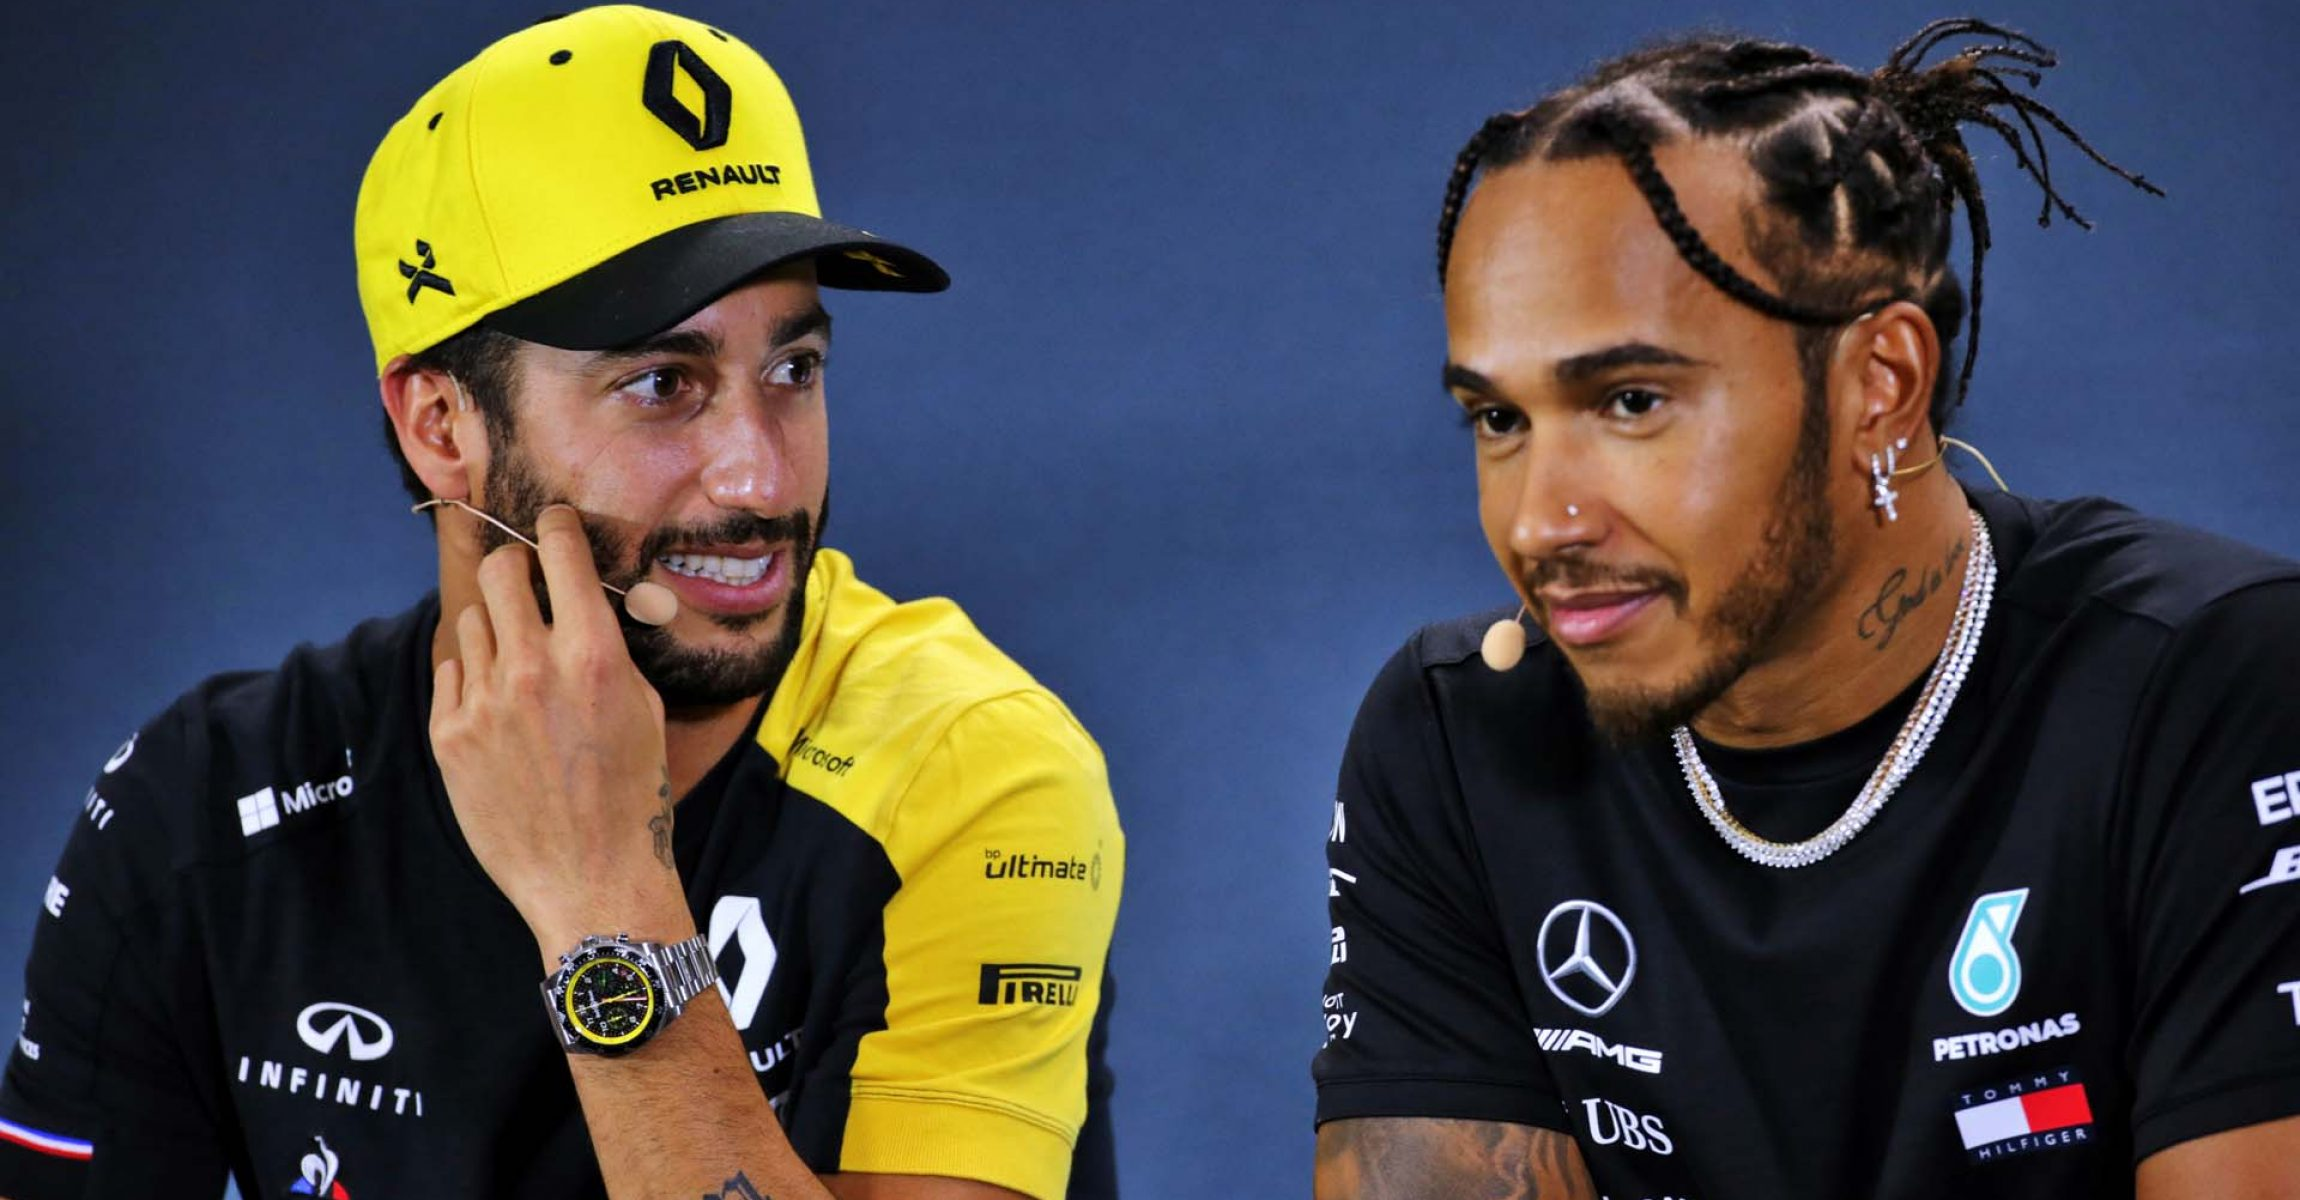 (L to R): Daniel Ricciardo (AUS) Renault F1 Team and Lewis Hamilton (GBR) Mercedes AMG F1 in the FIA Press Conference. Singapore Grand Prix, Thursday 19th September 2019. Marina Bay Street Circuit, Singapore.